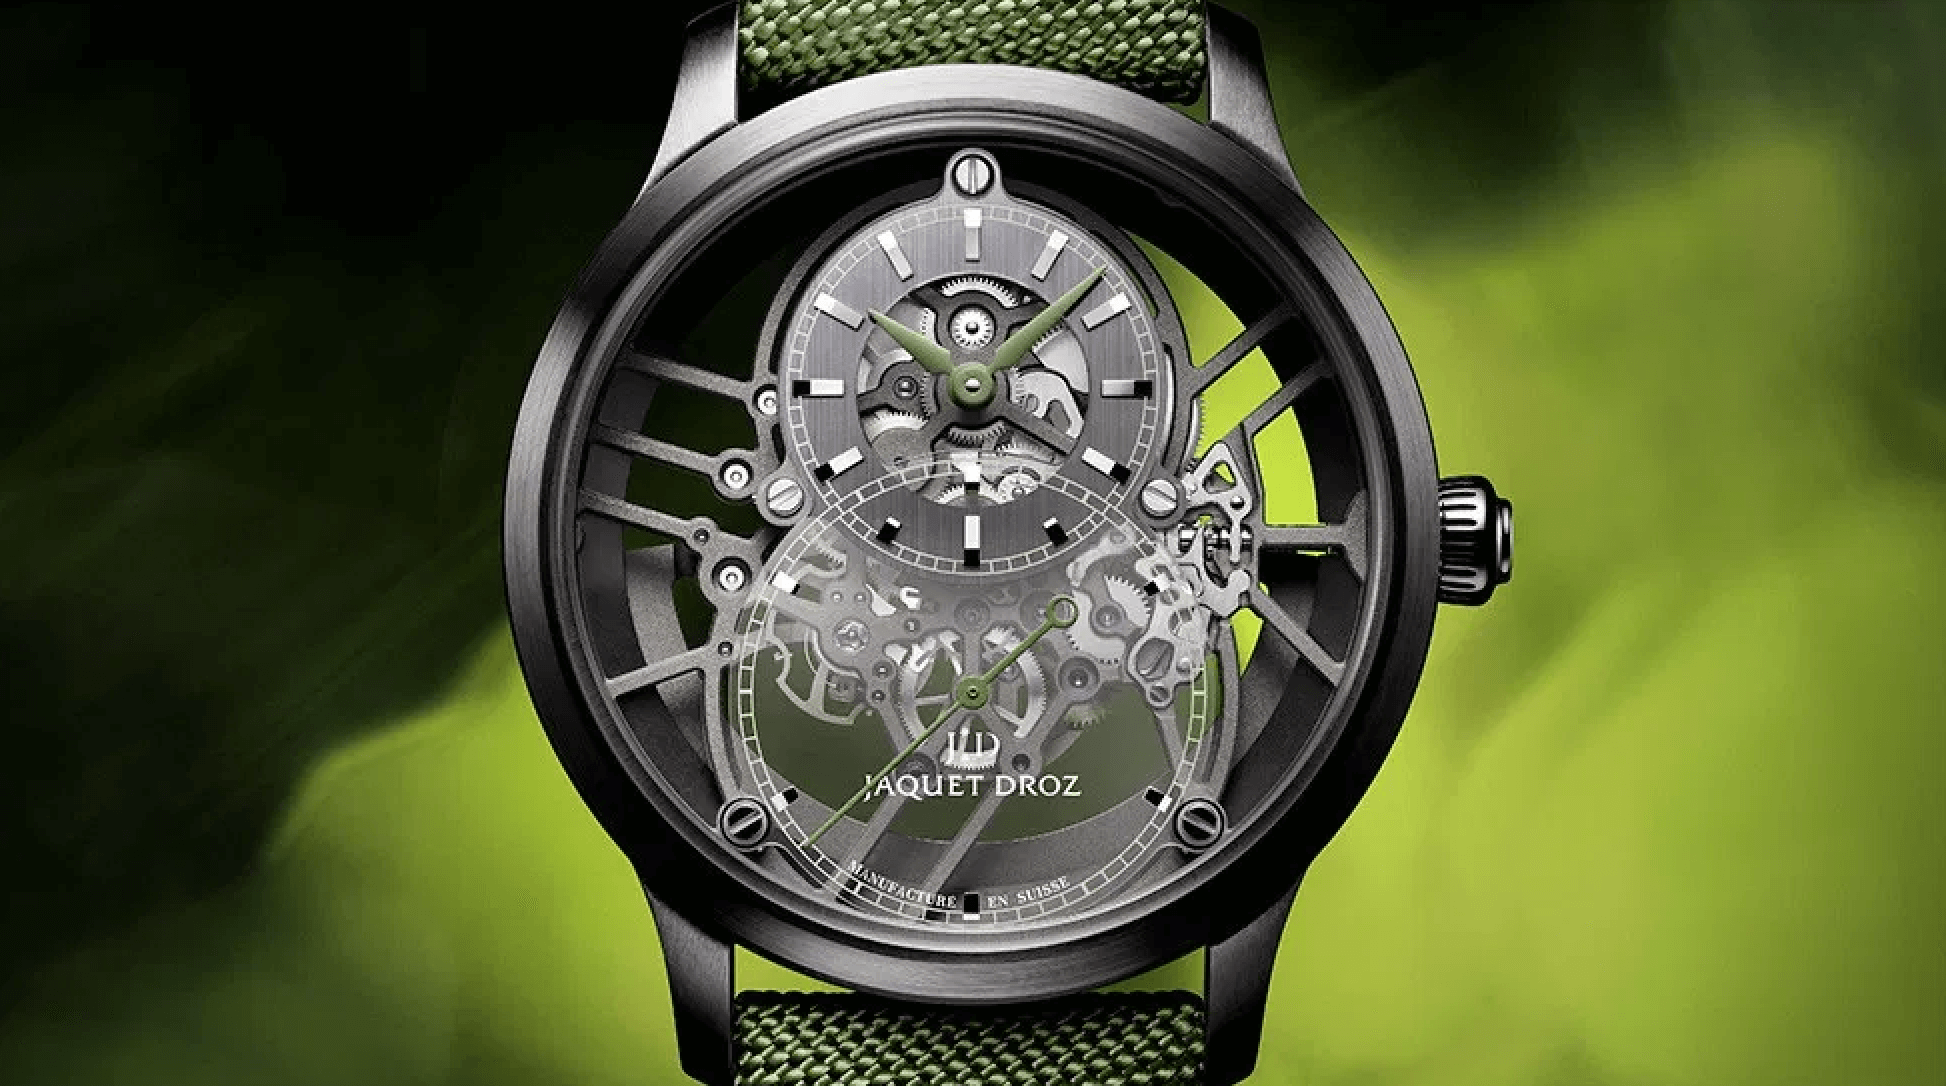 JAQUET DROZ GRANDE SECONDE SKELET-ONE TRİO saat blog haber